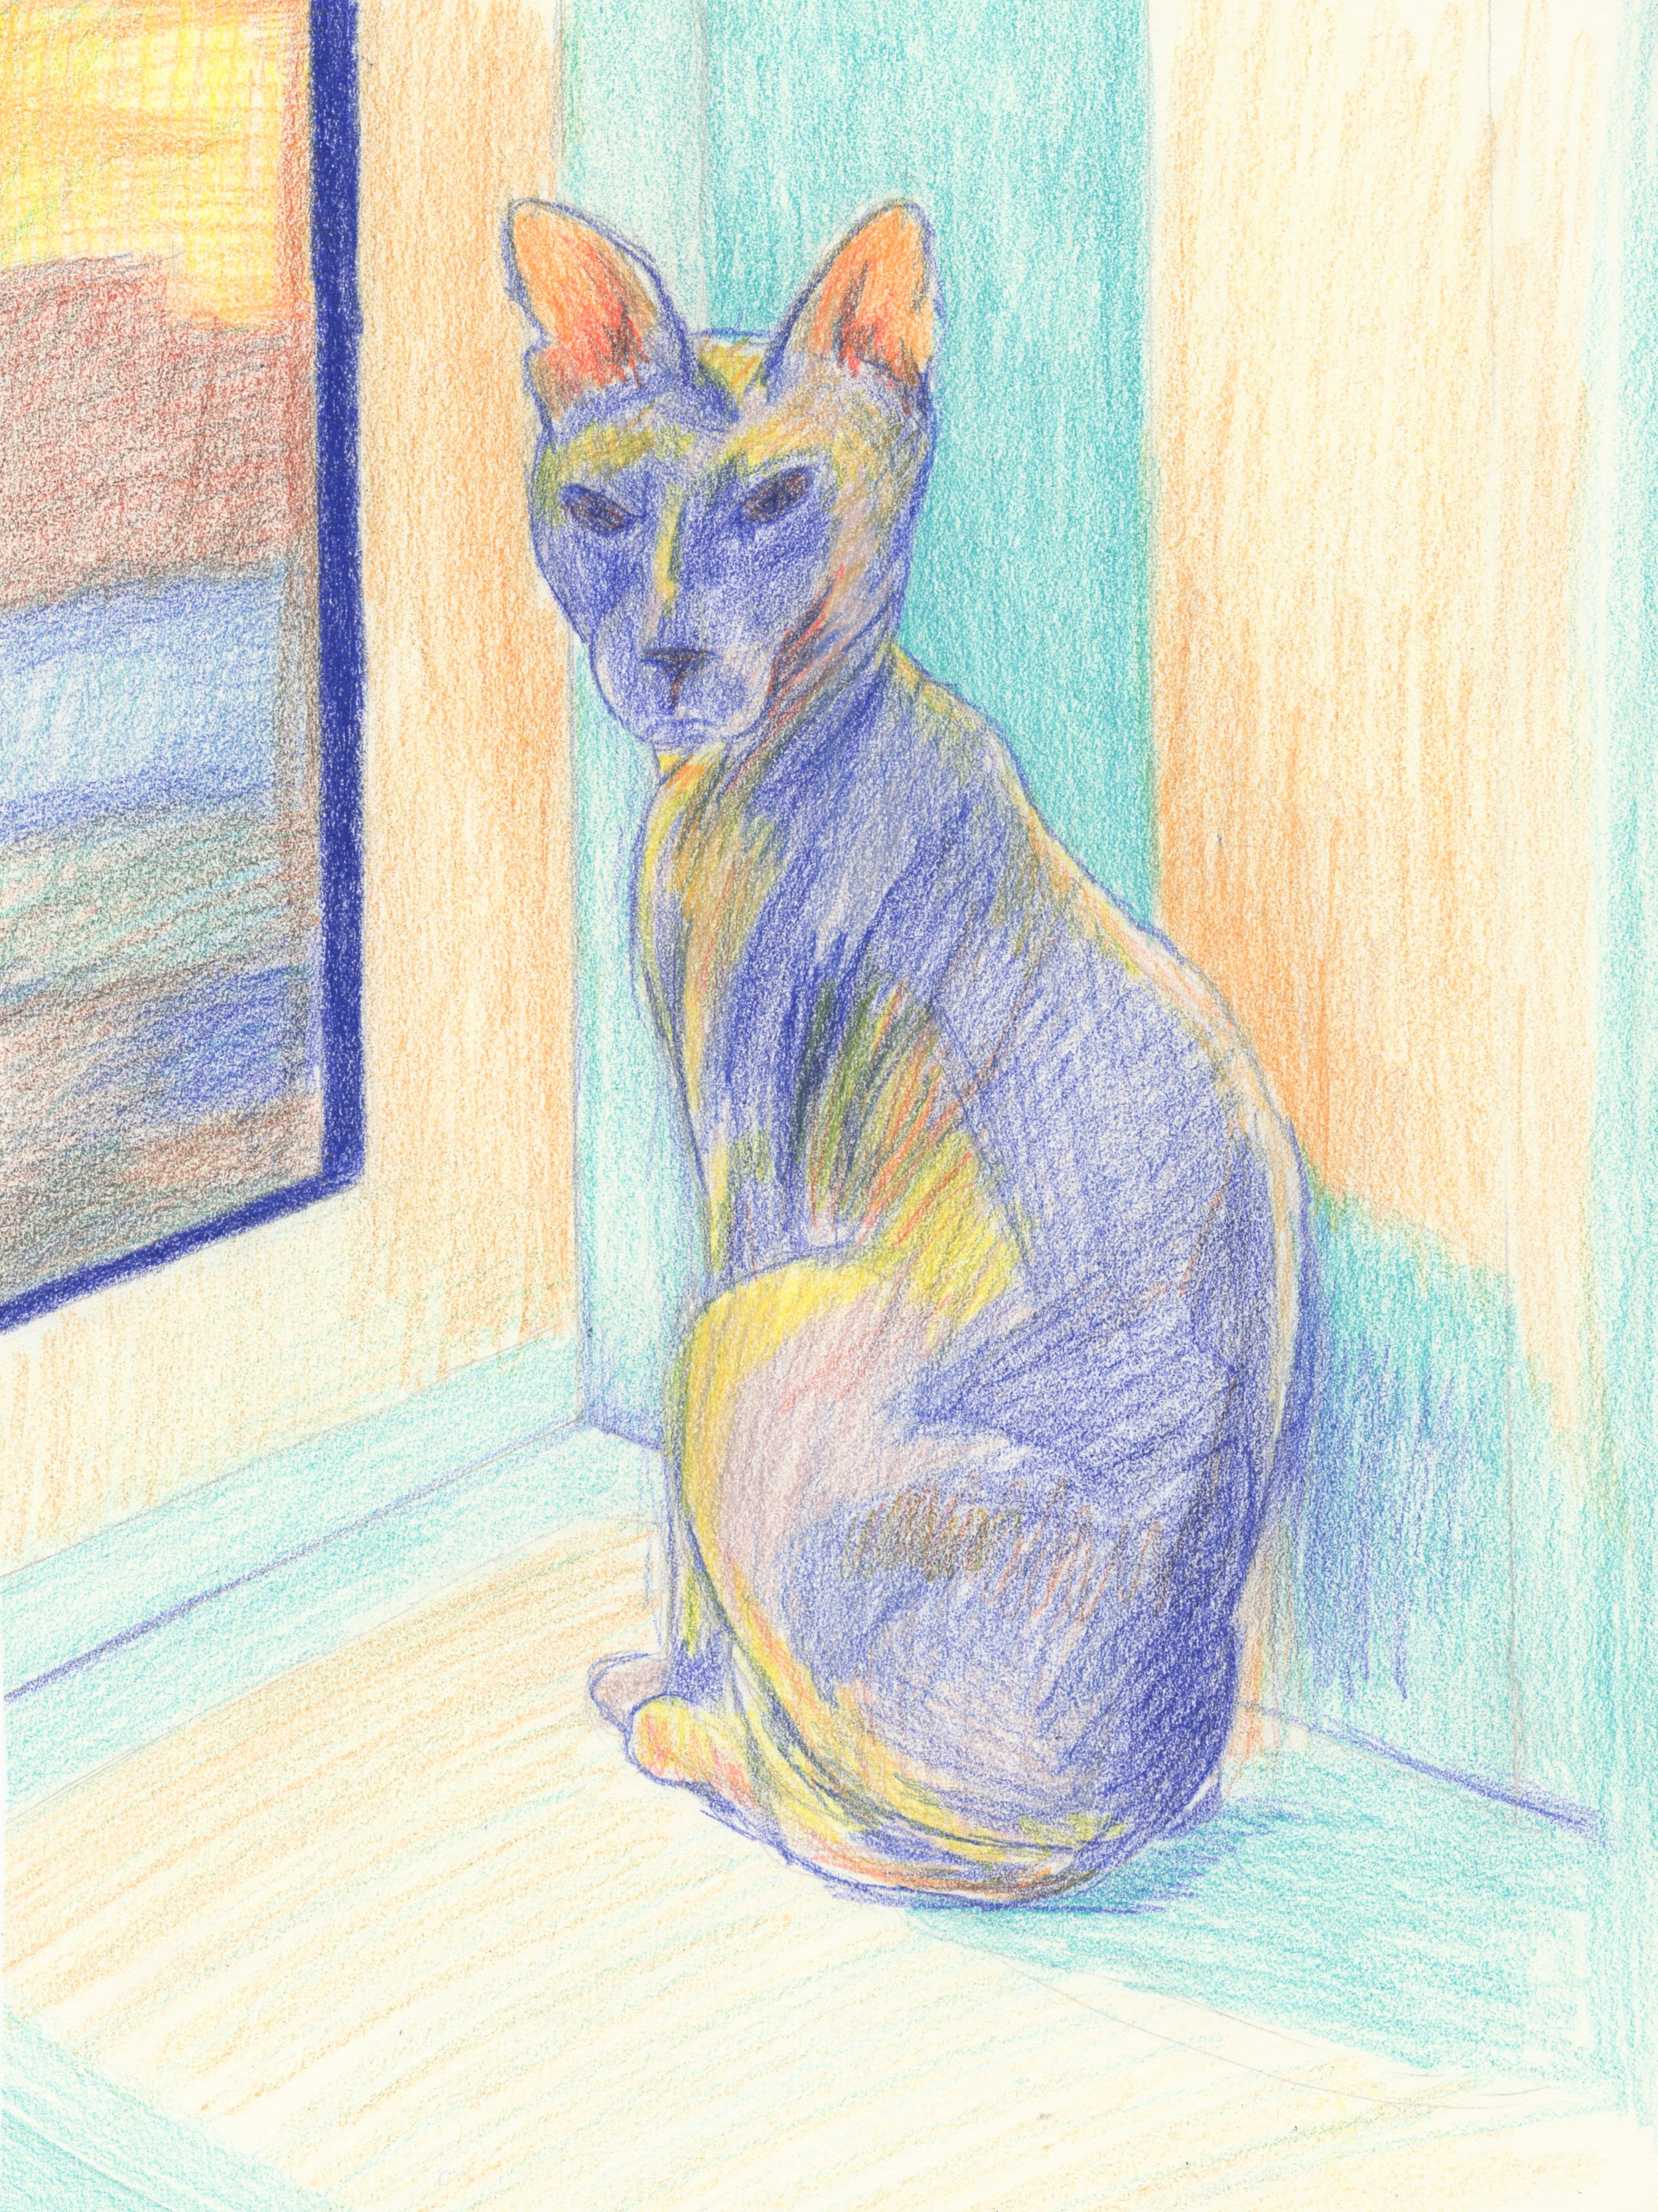 Pencil sketch of hairless cat.